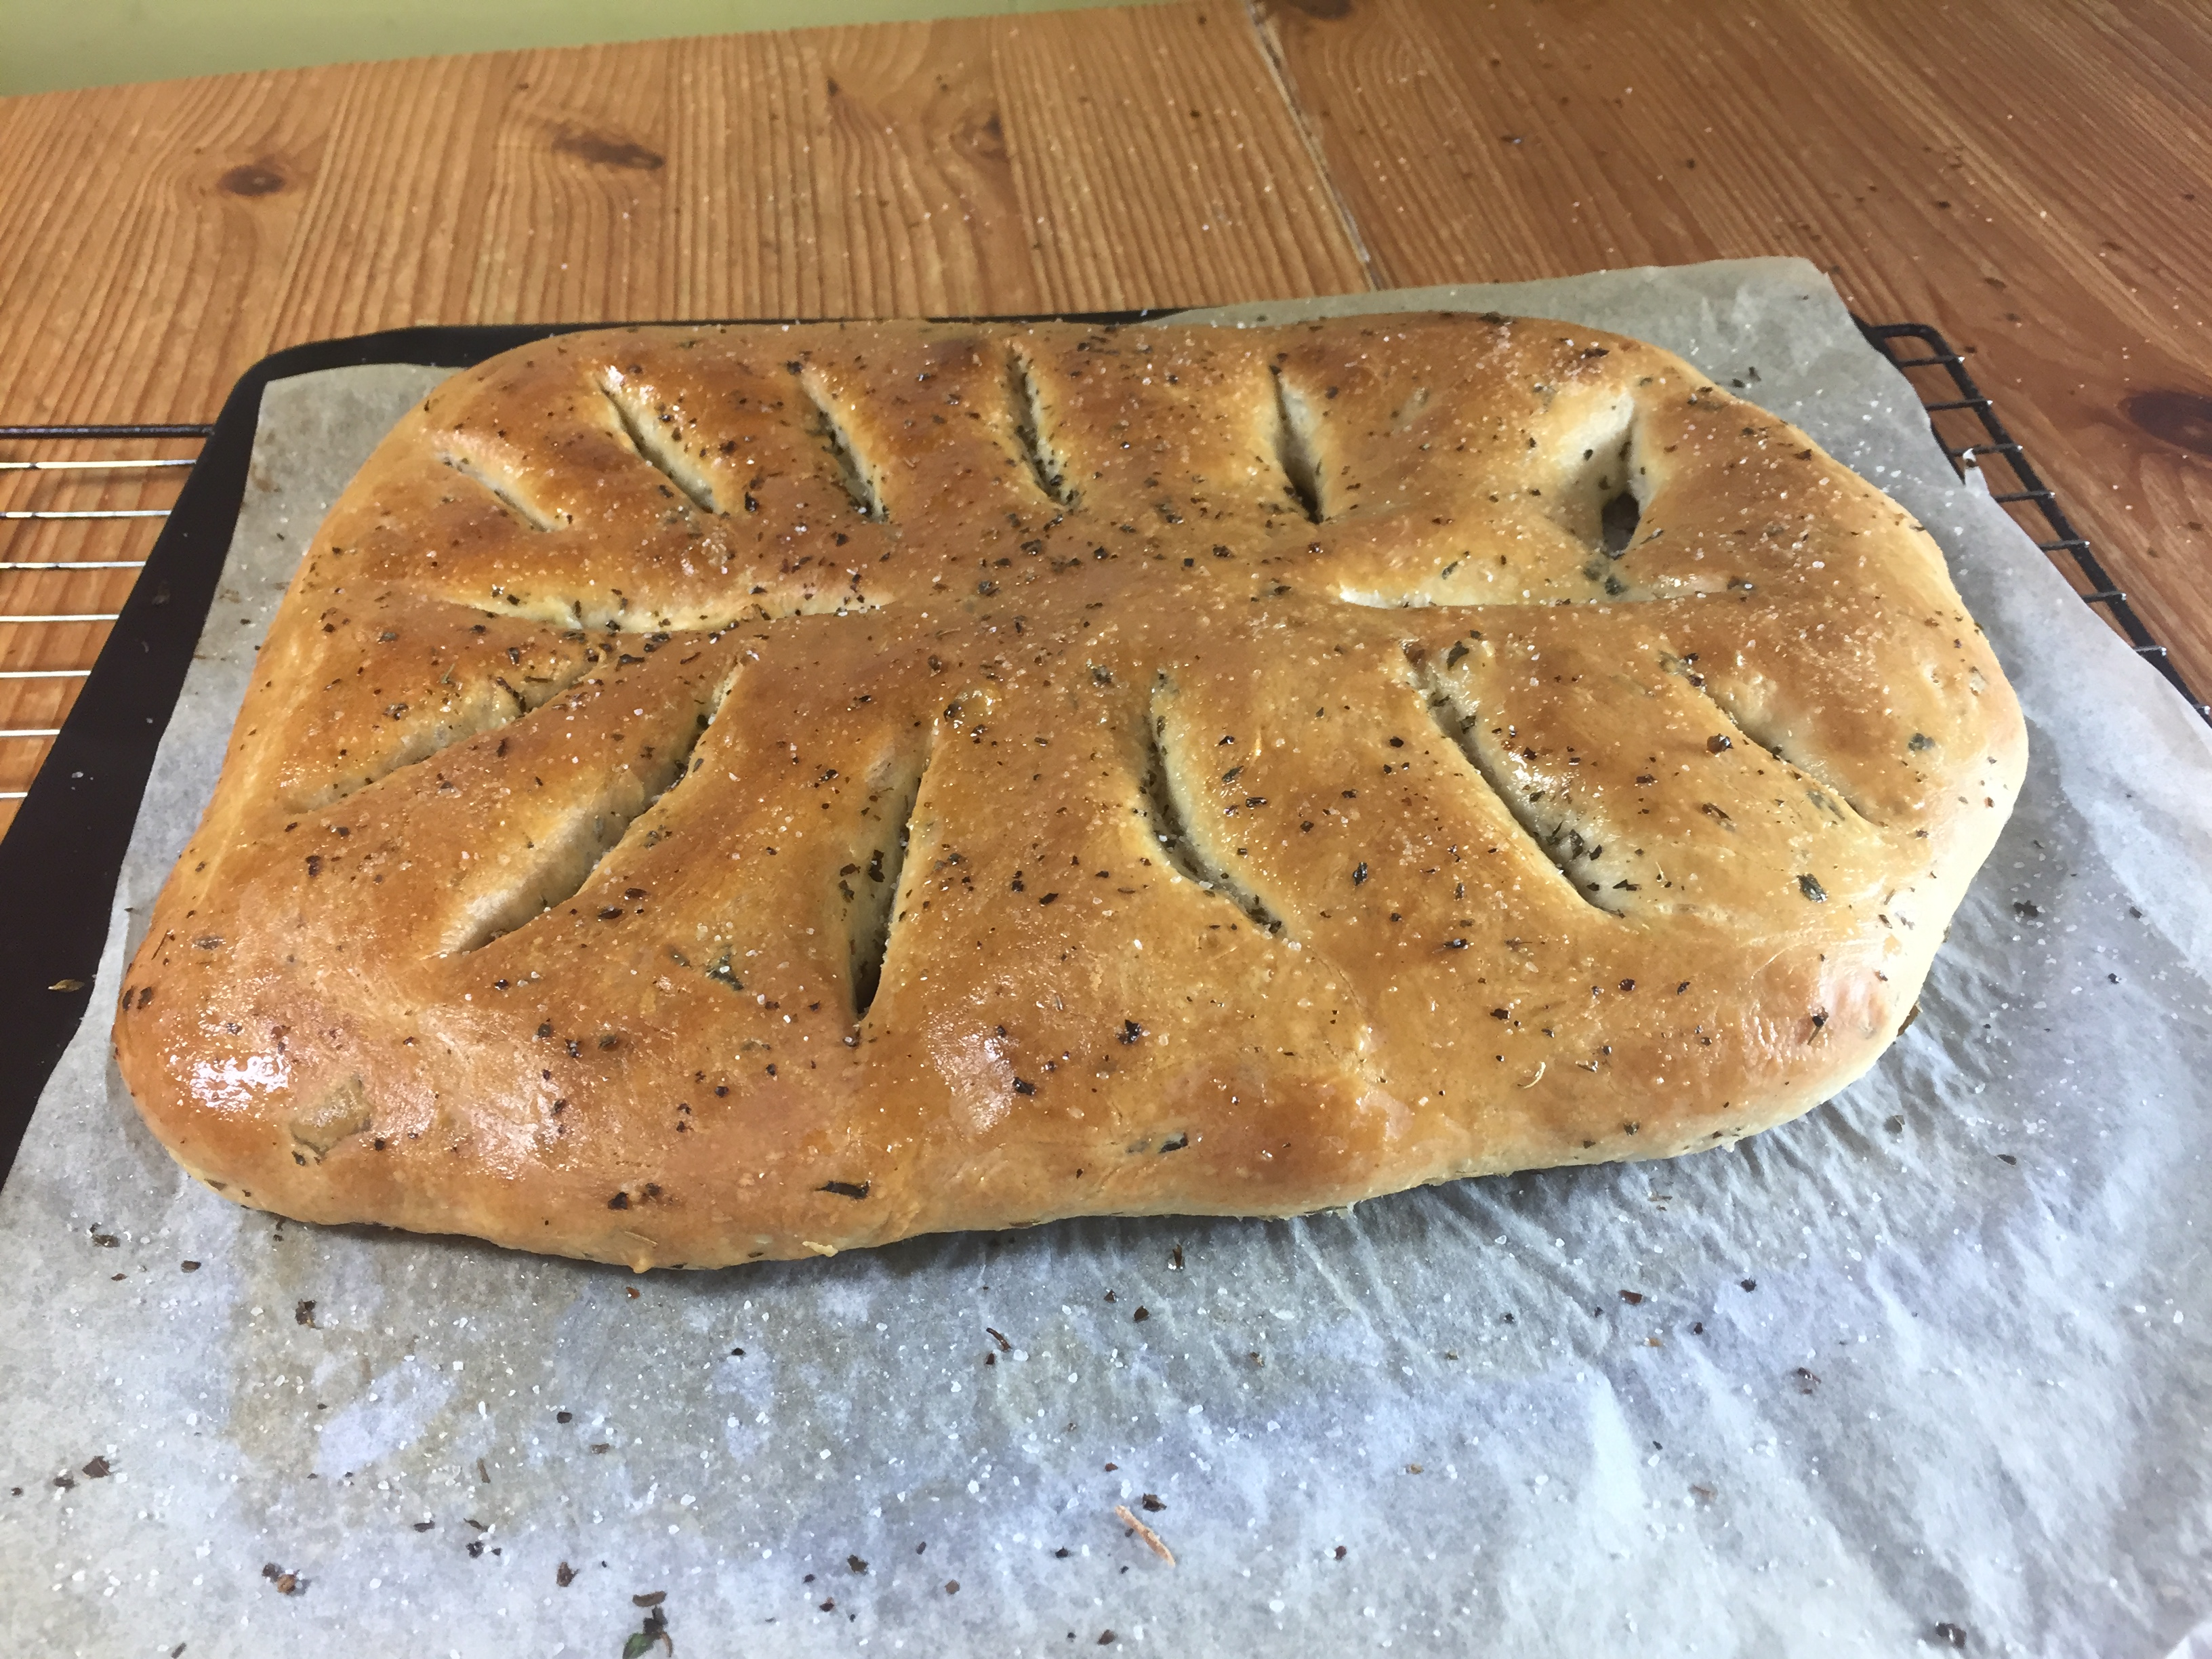 How to bake Fougasse Bread - meadow brown bakery